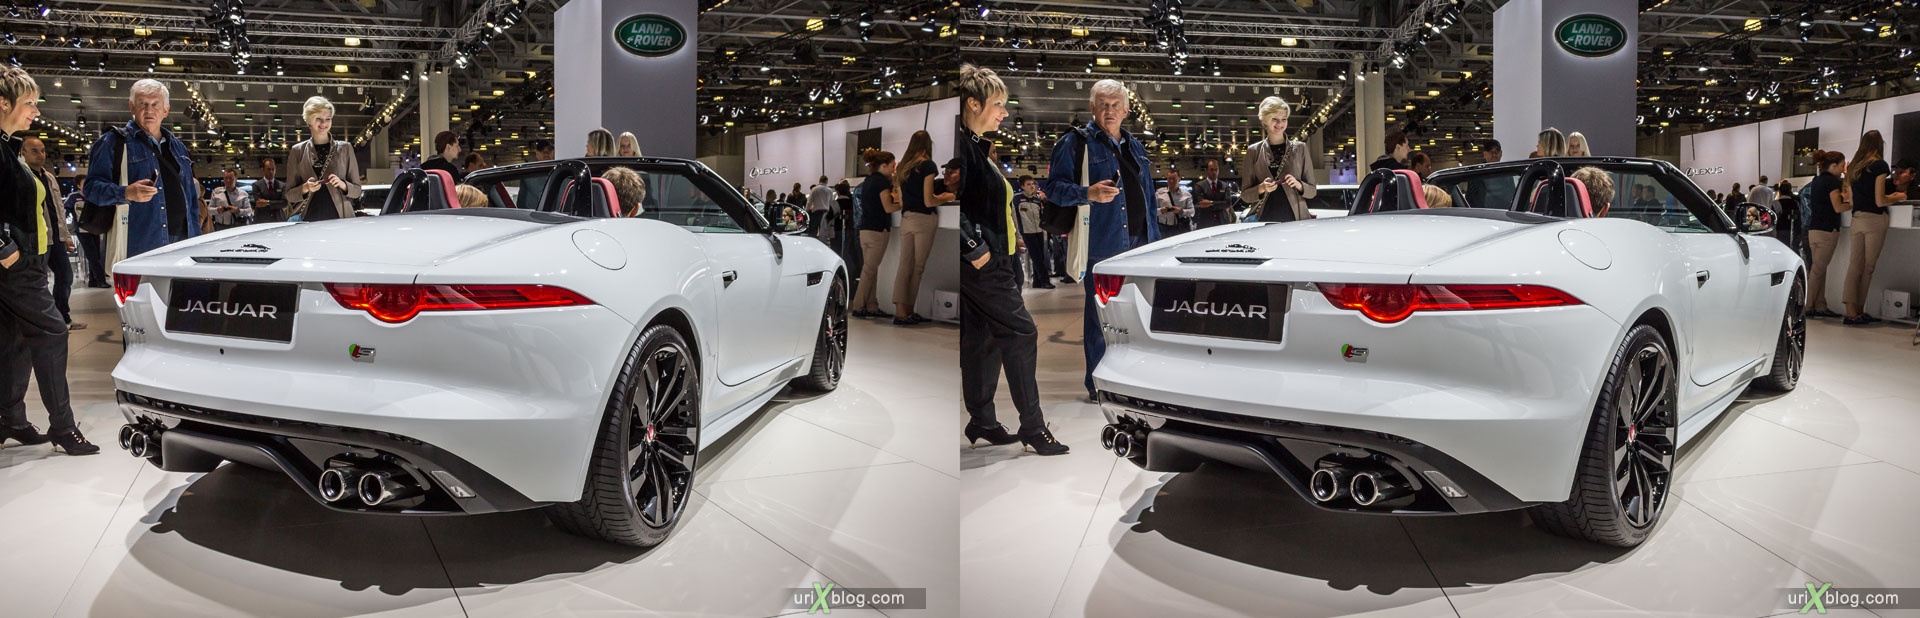 Jaguar F-type, Moscow International Automobile Salon 2014, MIAS 2014, girls, models, Crocus Expo, Moscow, Russia, 3D, stereo pair, cross-eyed, crossview, cross view stereo pair, stereoscopic, 2014